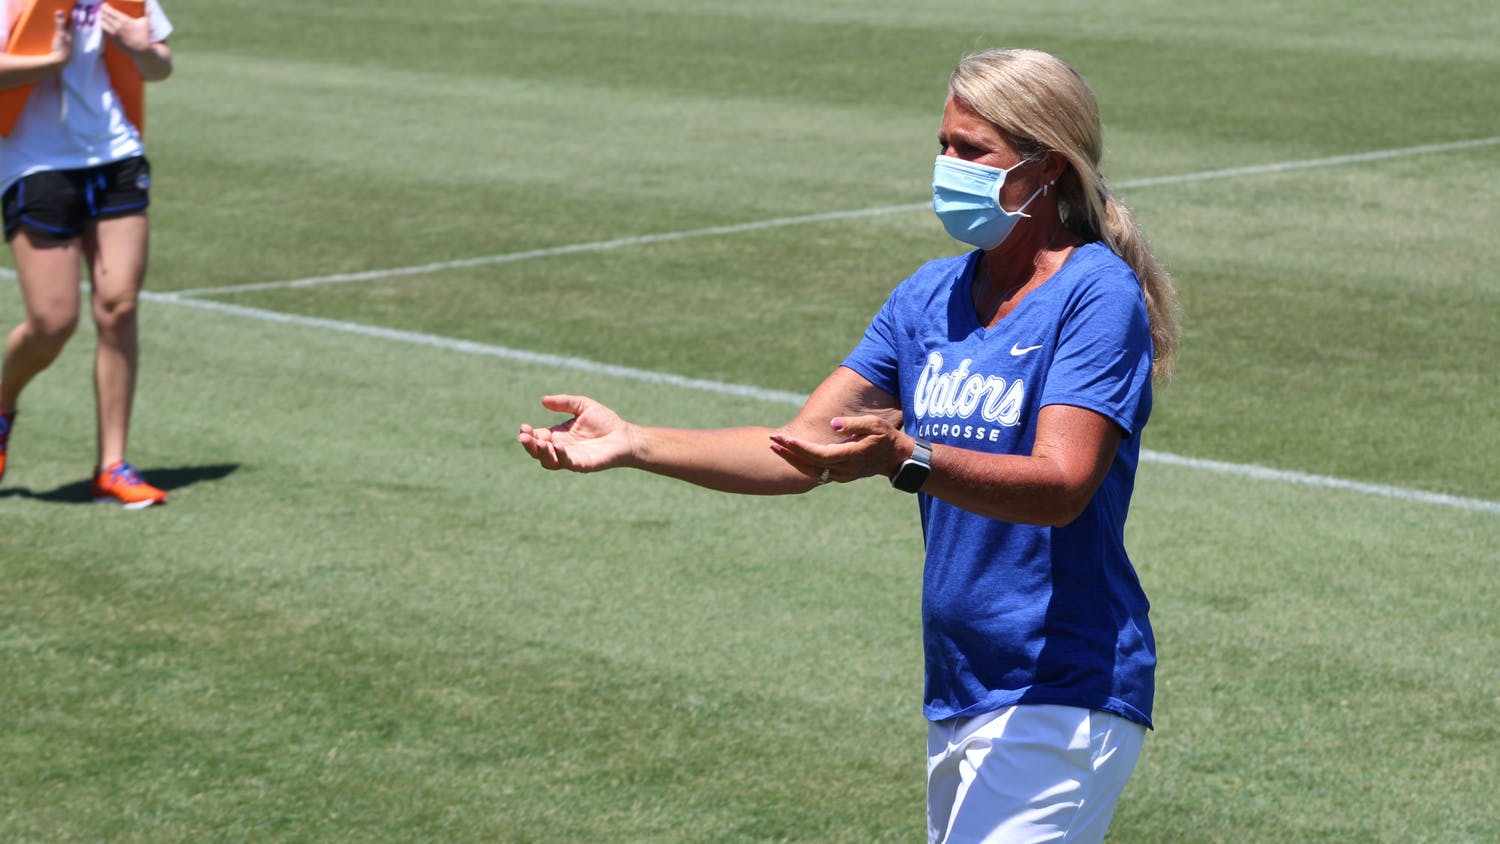 UF lacrosse head coach Amanda O'Leary. The Gators added transfer Catherine Flaherty to their roster Wednesday.